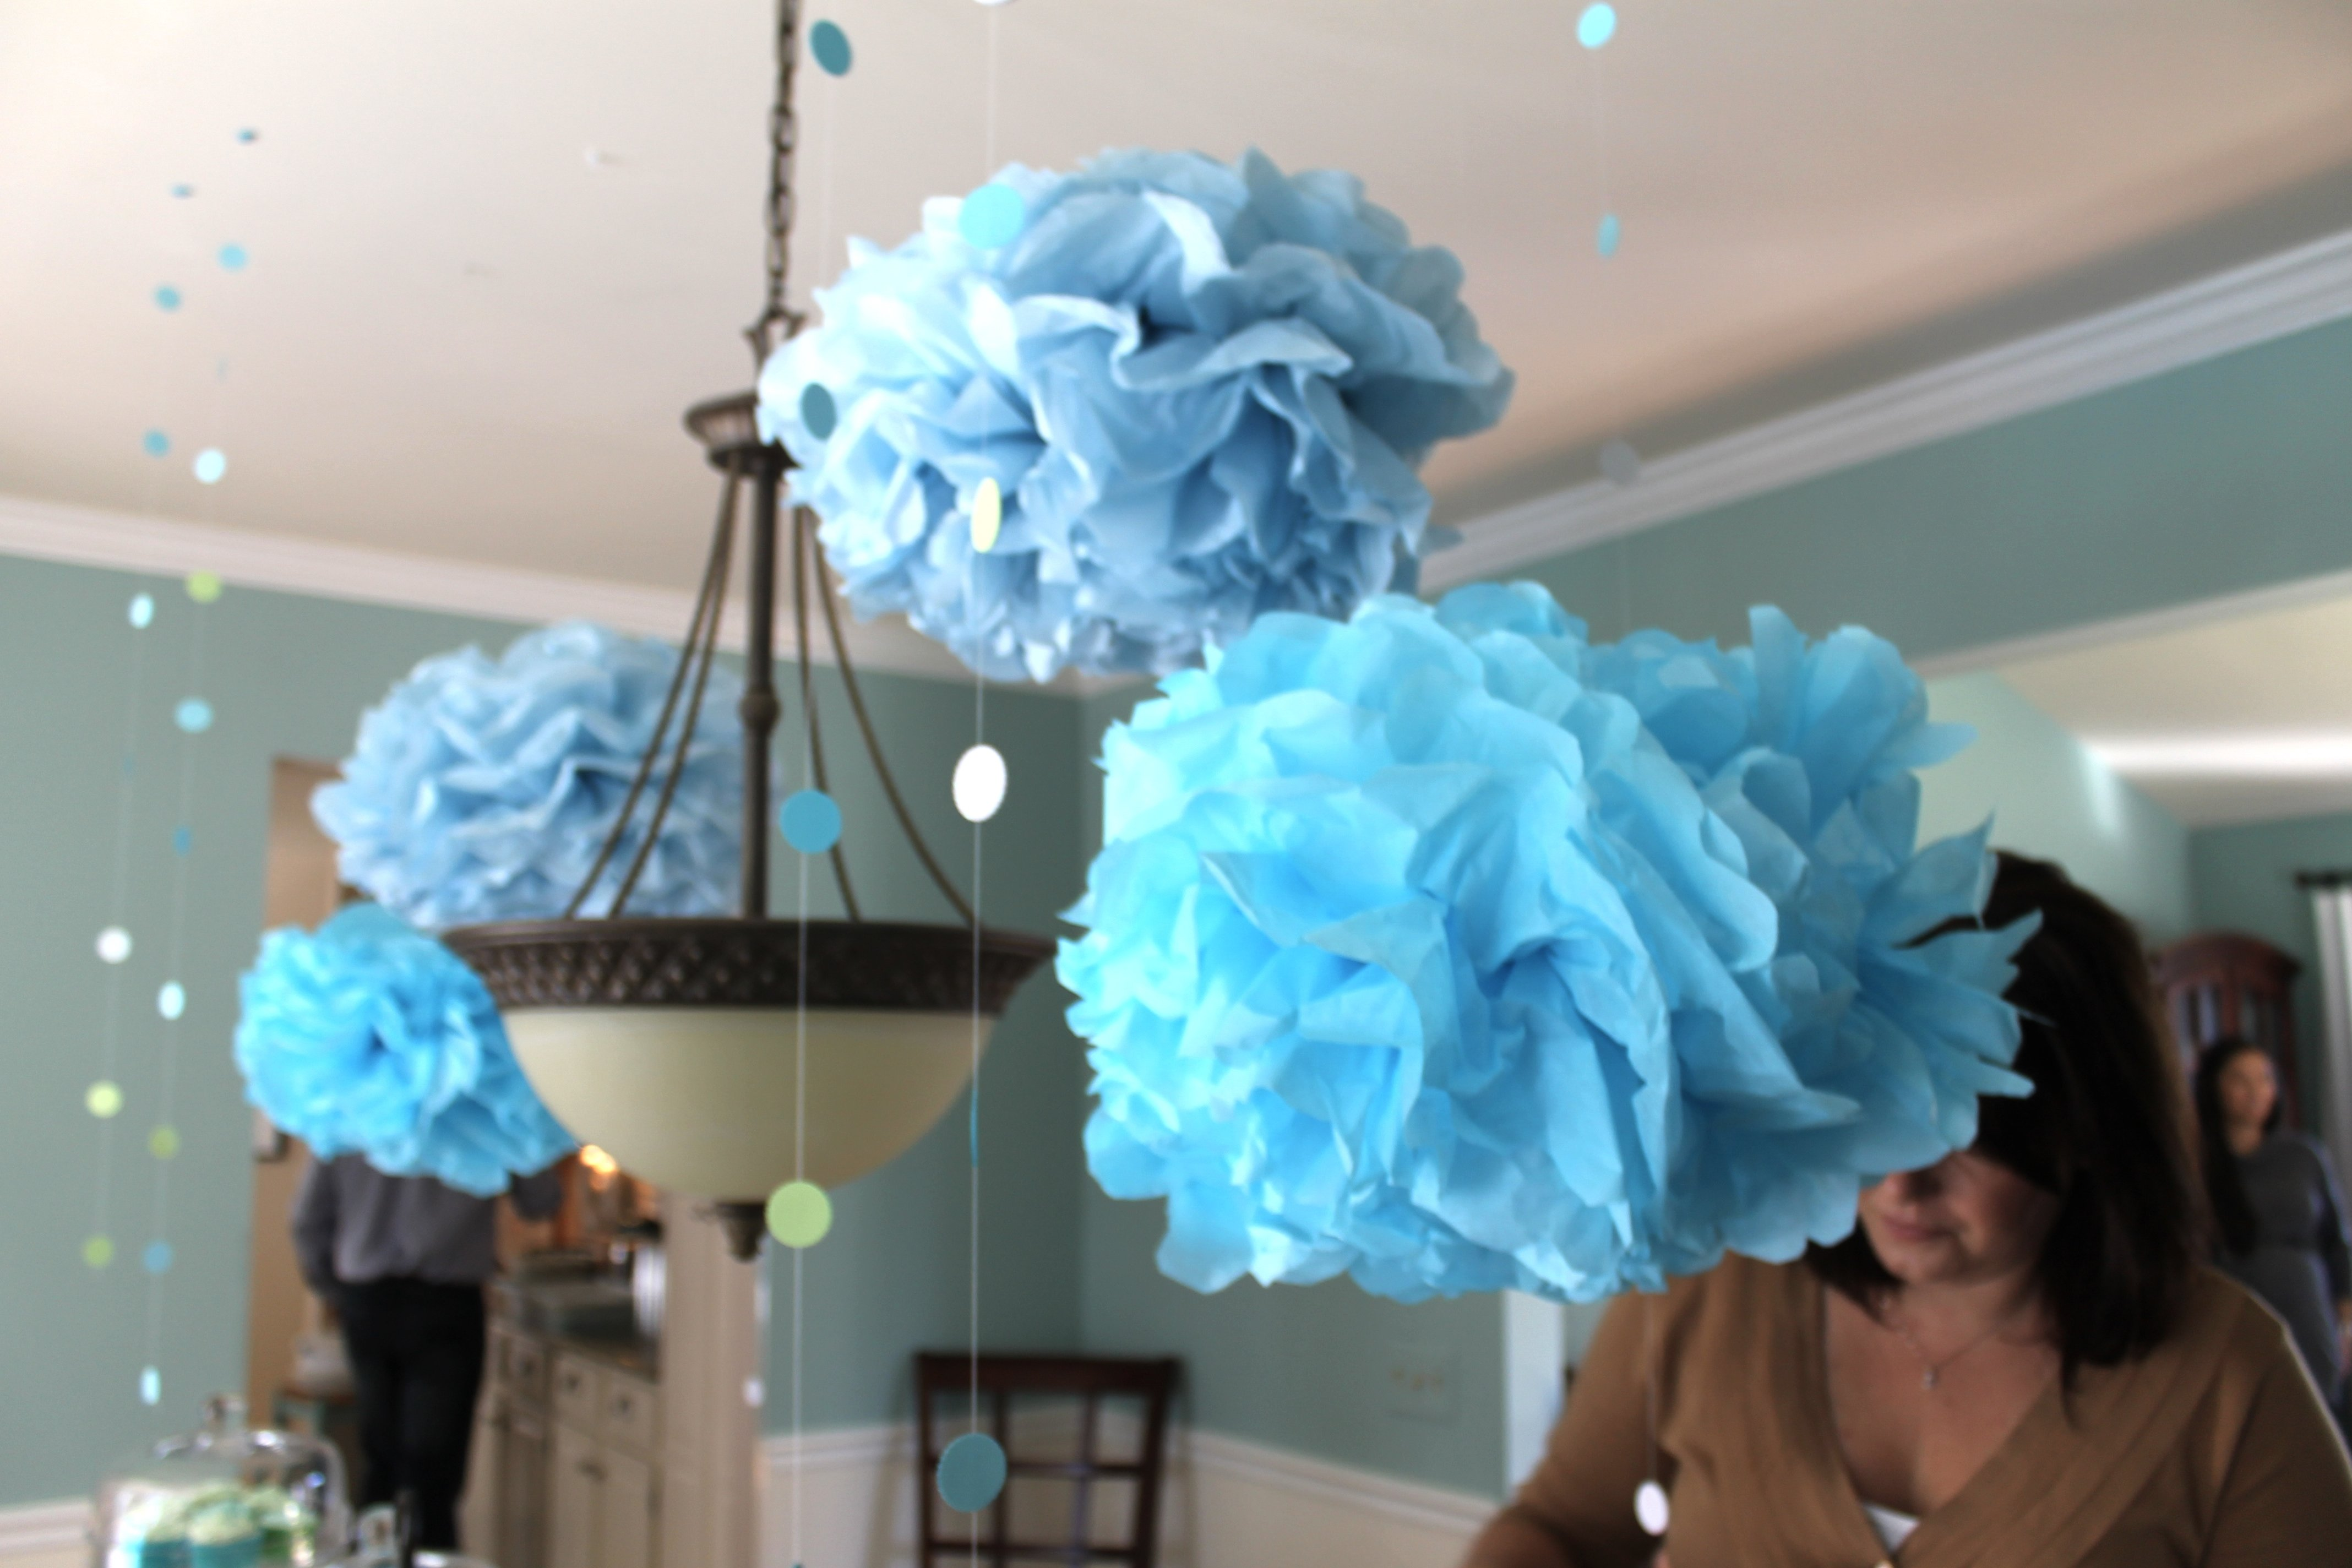 10 Spectacular Homemade Baby Shower Decoration Ideas homemade baby shower decorations home decor ideas 25 owl themed 2020